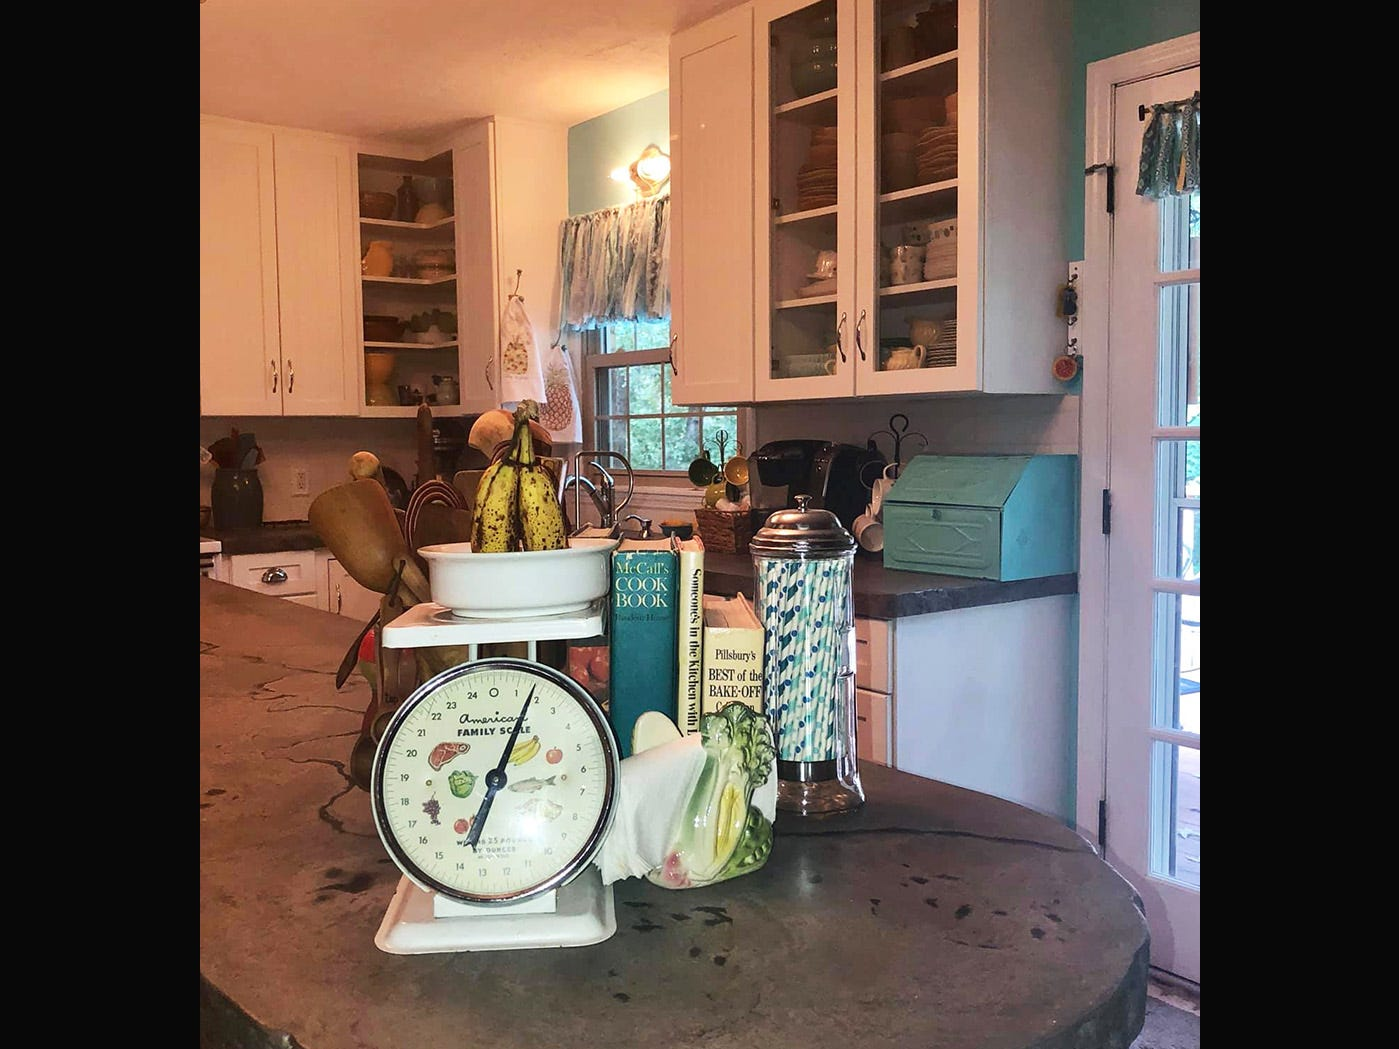 A variety of vintage items from the 1950s complete Kathleen Walter's retro kitchen redesign.